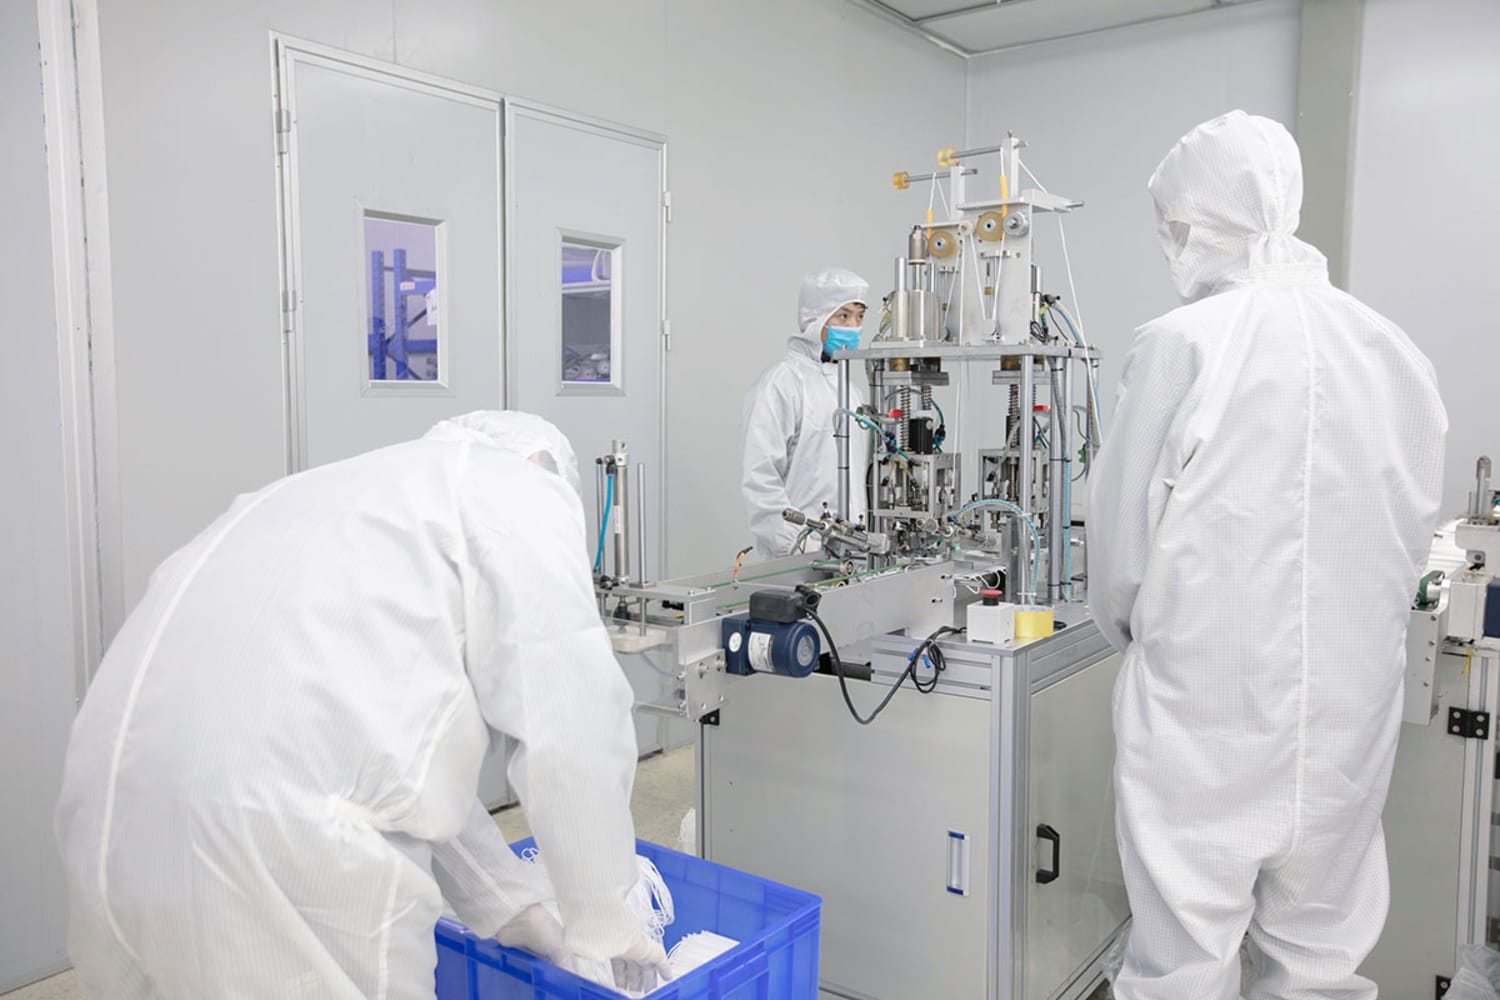 WEB Foxconn Production of surgical masks